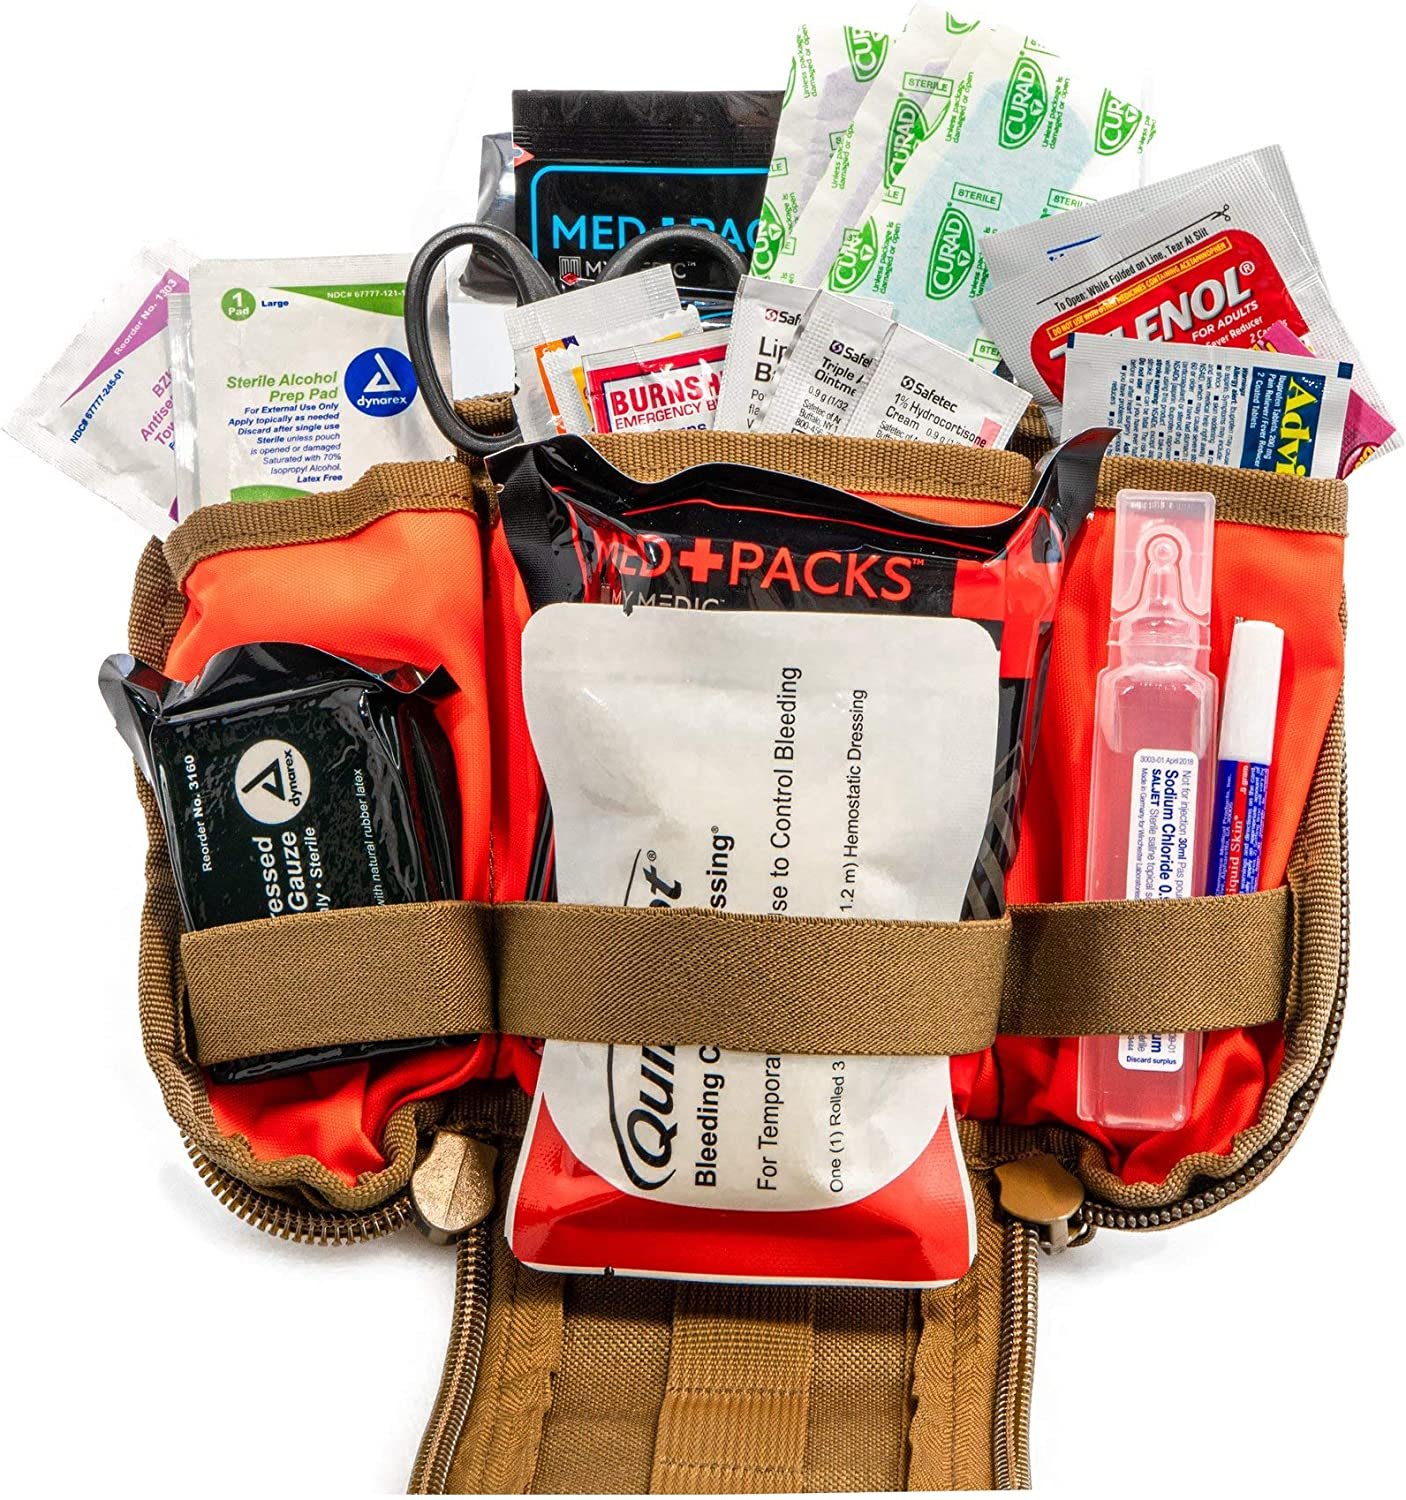 Image of the MyMedic first-aid kit bag with various emergency stuff in it.